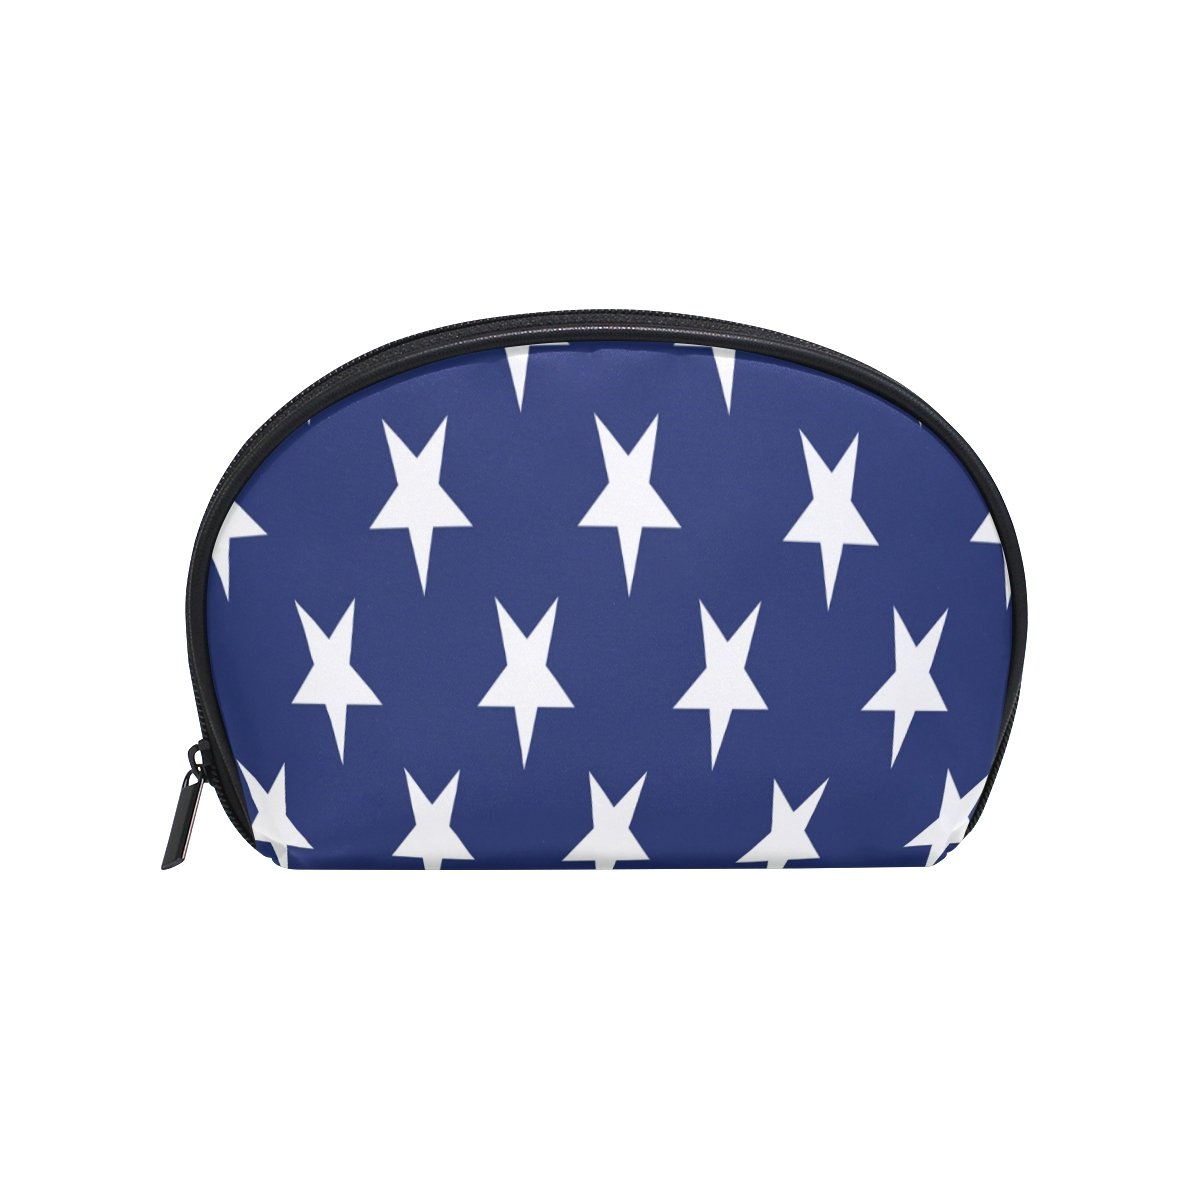 ALAZA Star Half Moon Cosmetic Makeup Toiletry Bag Pouch Travel Handy Purse Organizer Bag for Women Girls